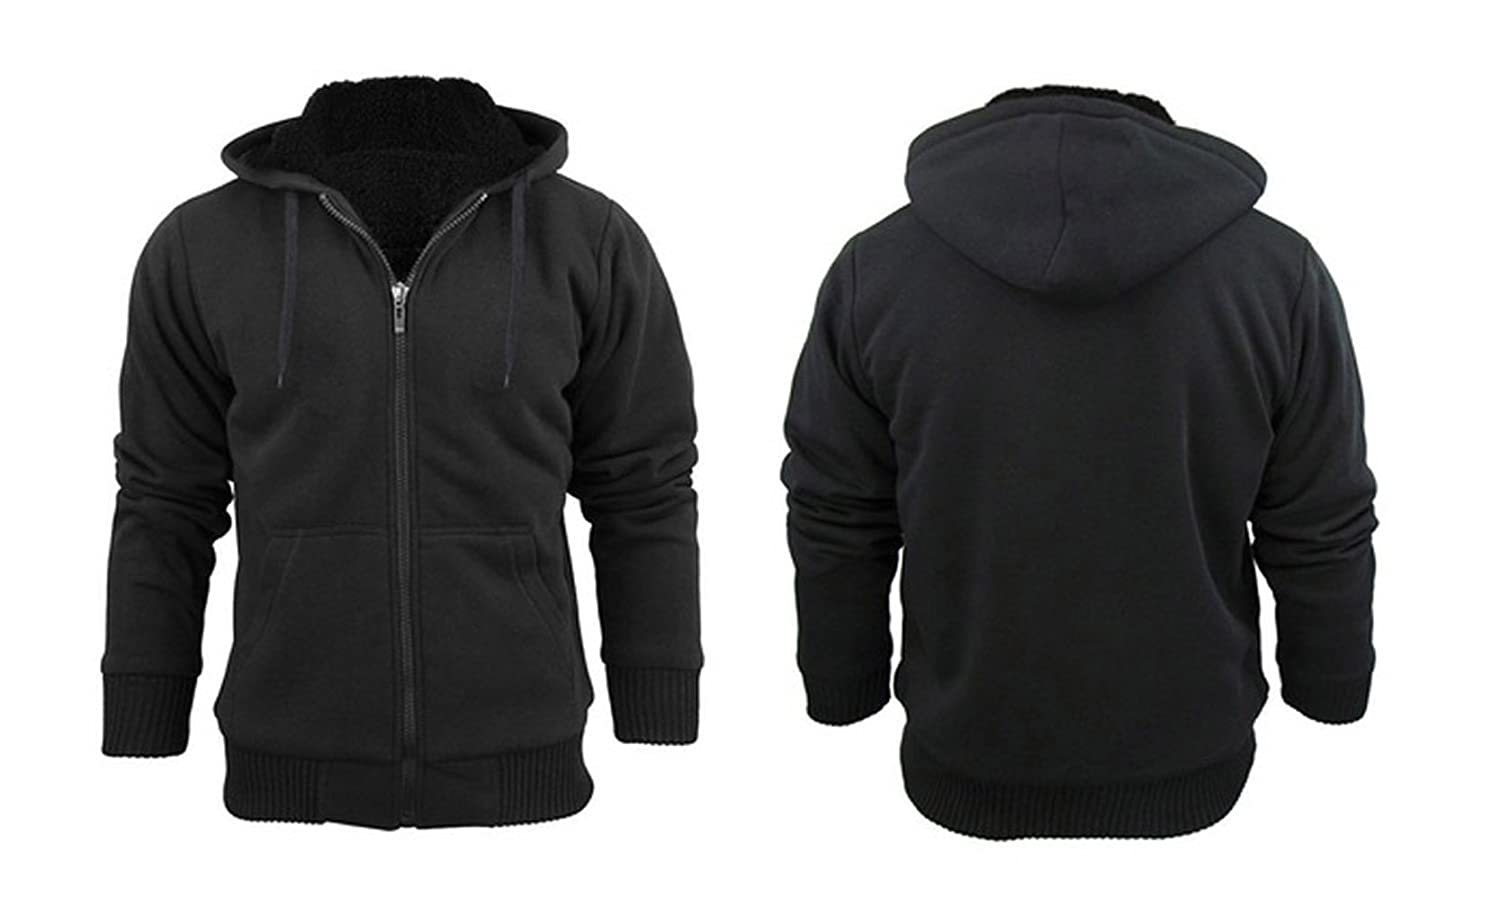 Black jacket with hoodie